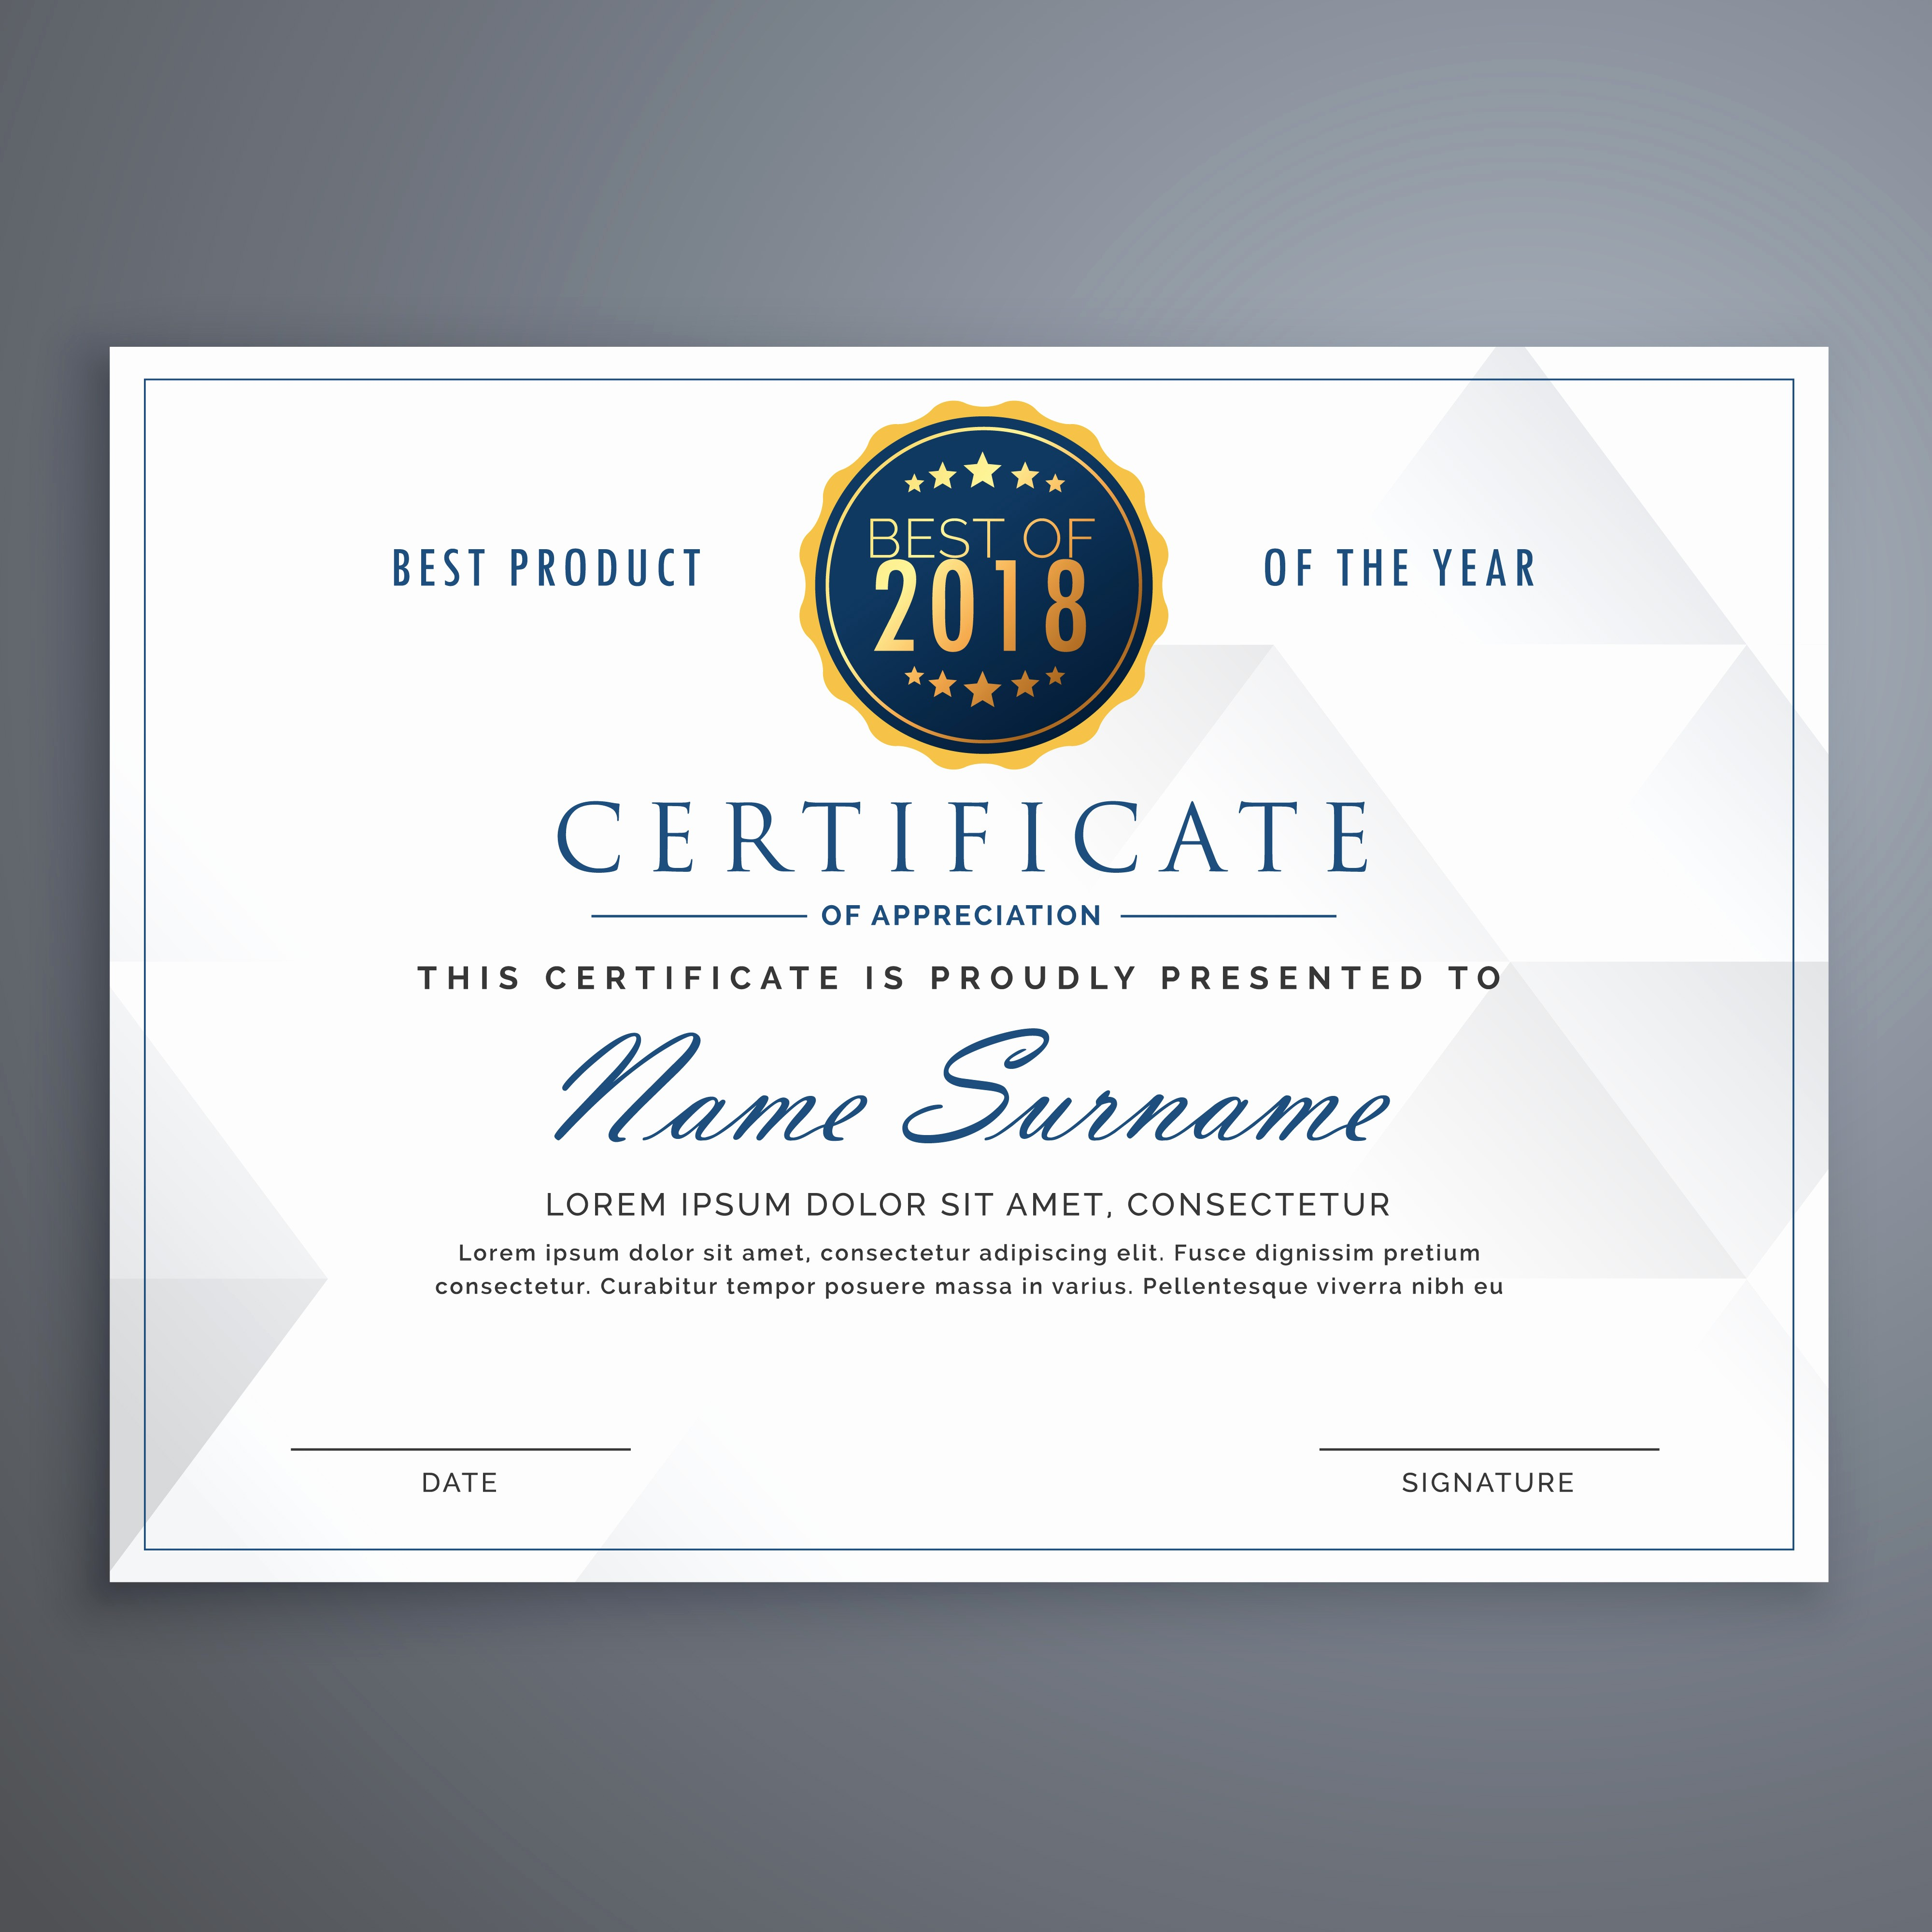 How to Design A Certificate Elegant Clean White Certificate Design Template Download Free